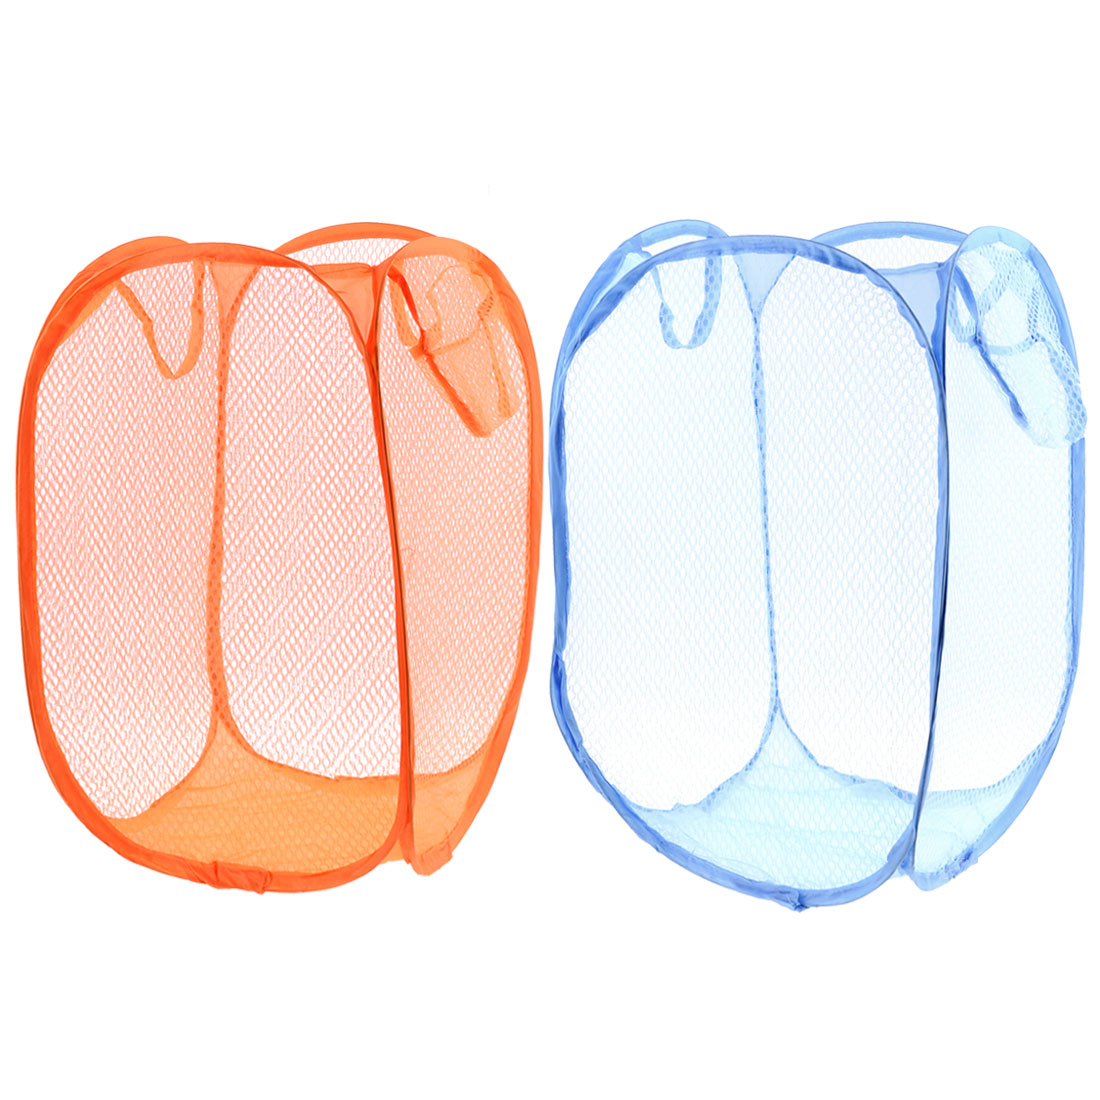 2pcs Orange Blue Foldable Meshy Clothes Storage Pop Up Laundry Basket Hamper